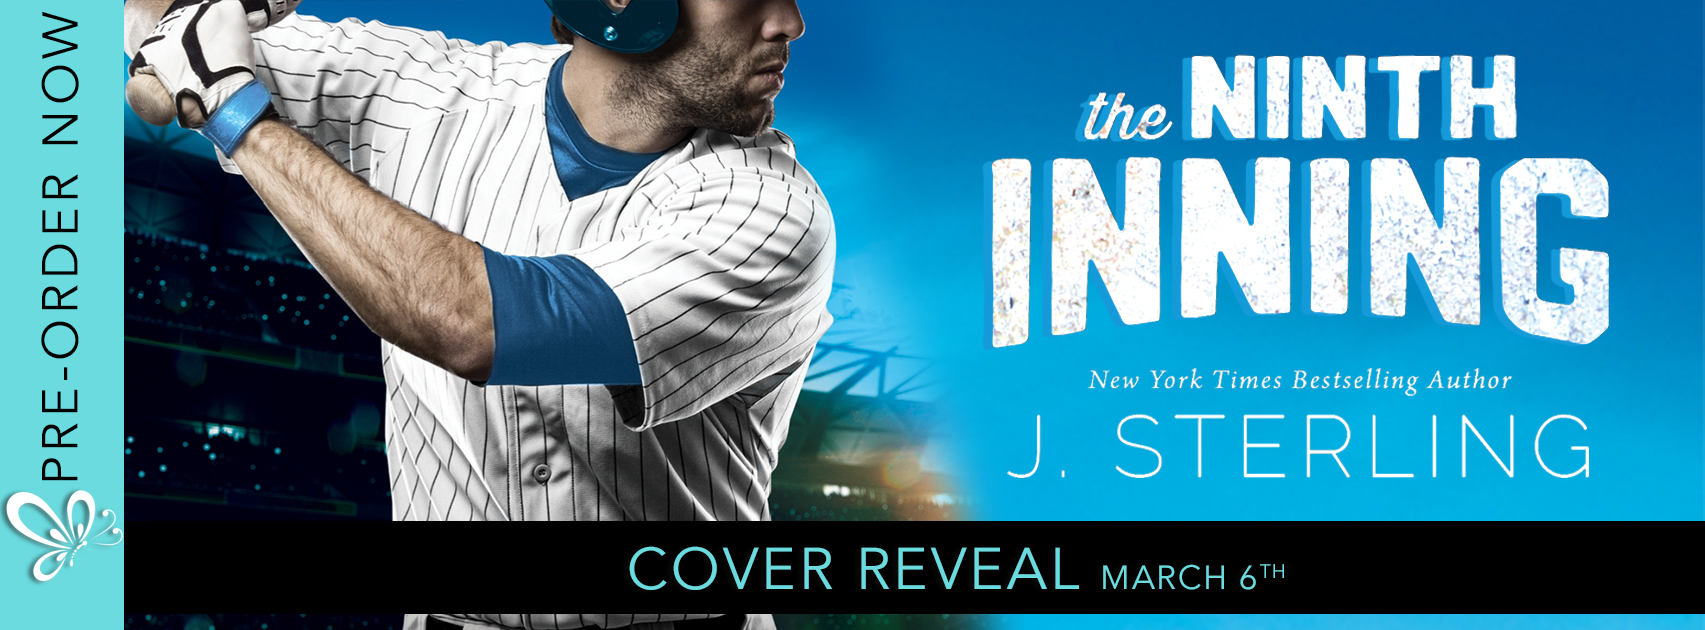 Social Butterfly PR Cover Reveal: The Ninth Inning by J. Sterling